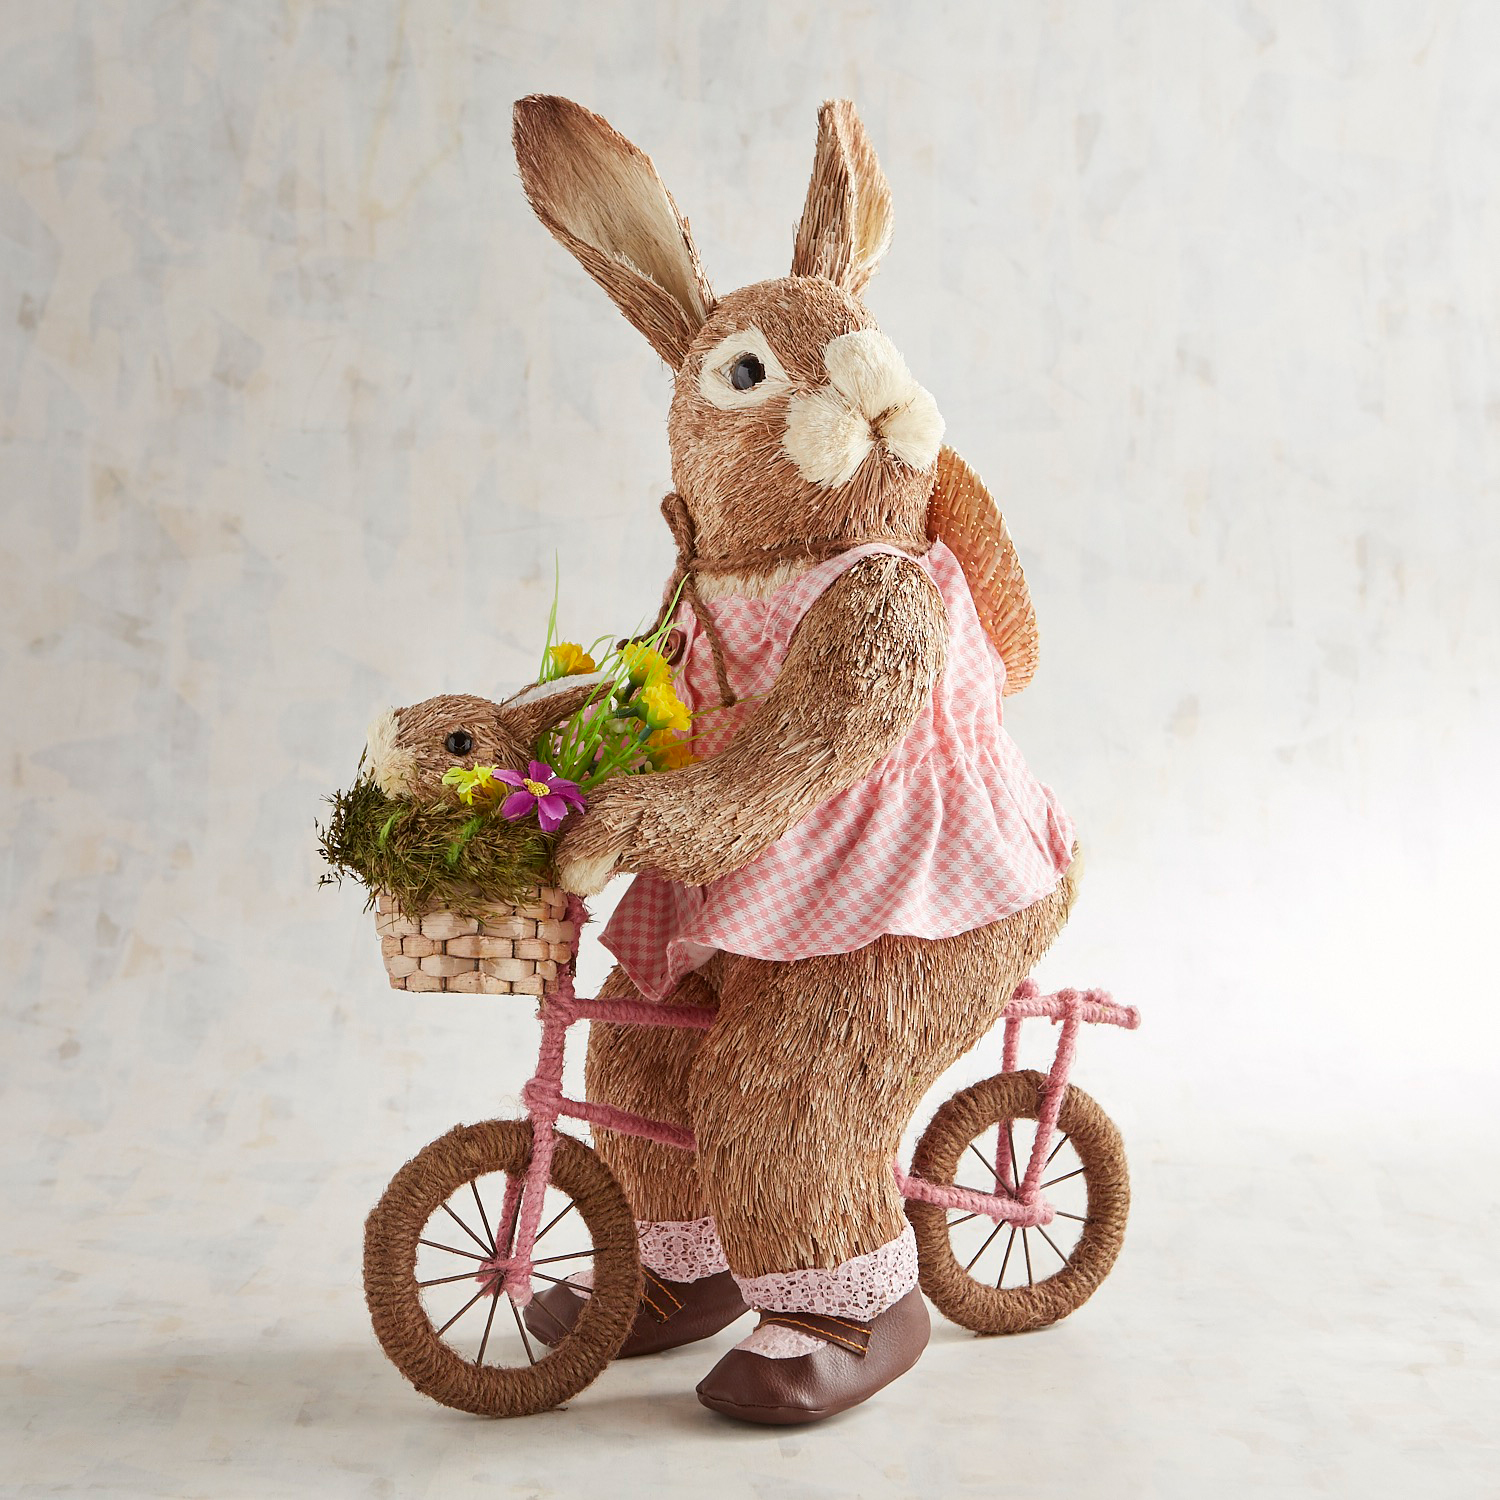 Dottie the Natural Bunny Riding a Pink Bike